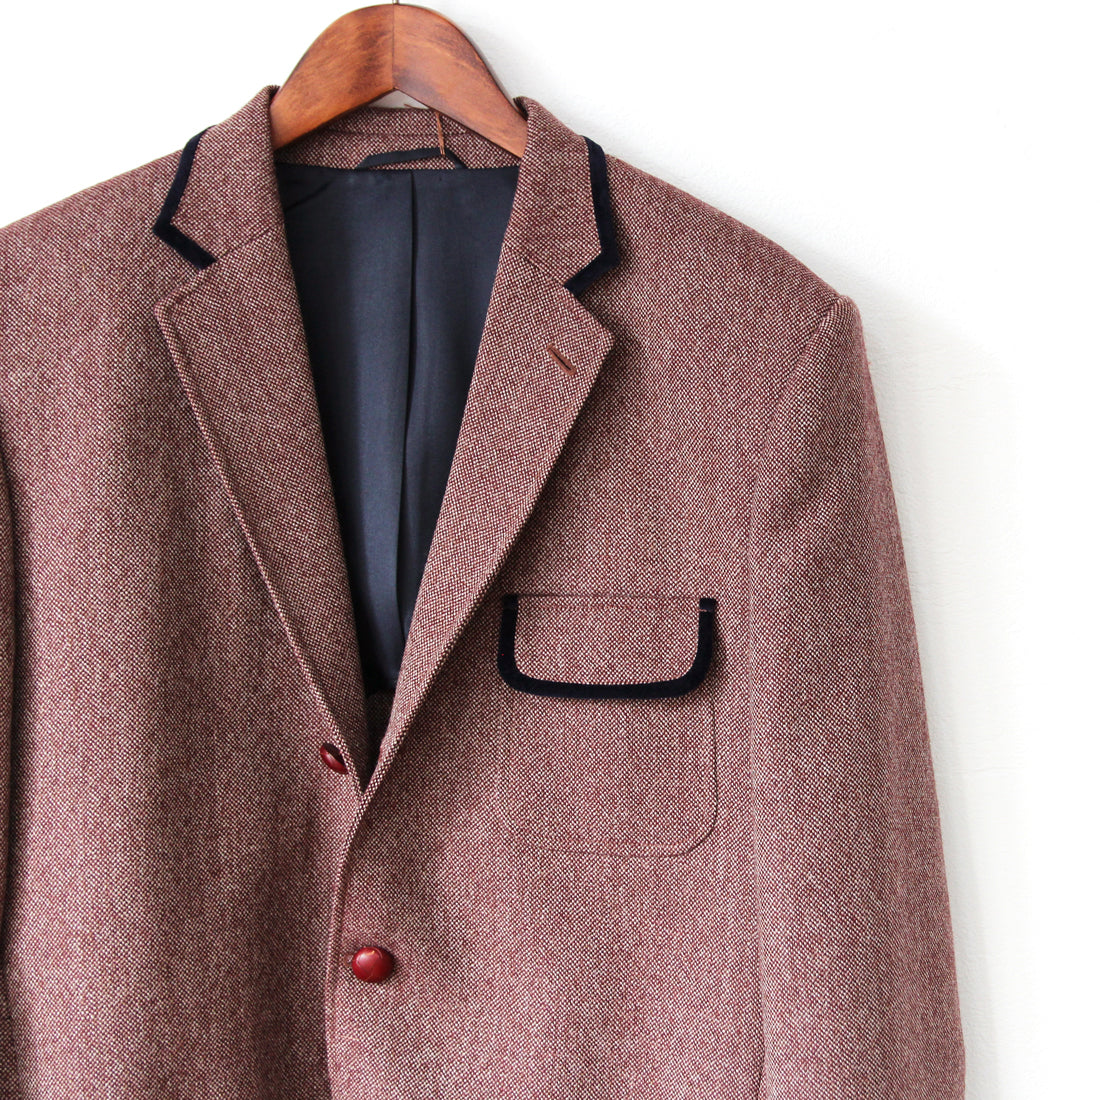 Beggars Run - NAILHEAD TWEED SACK/IVY JACKET (burgundy & grey)